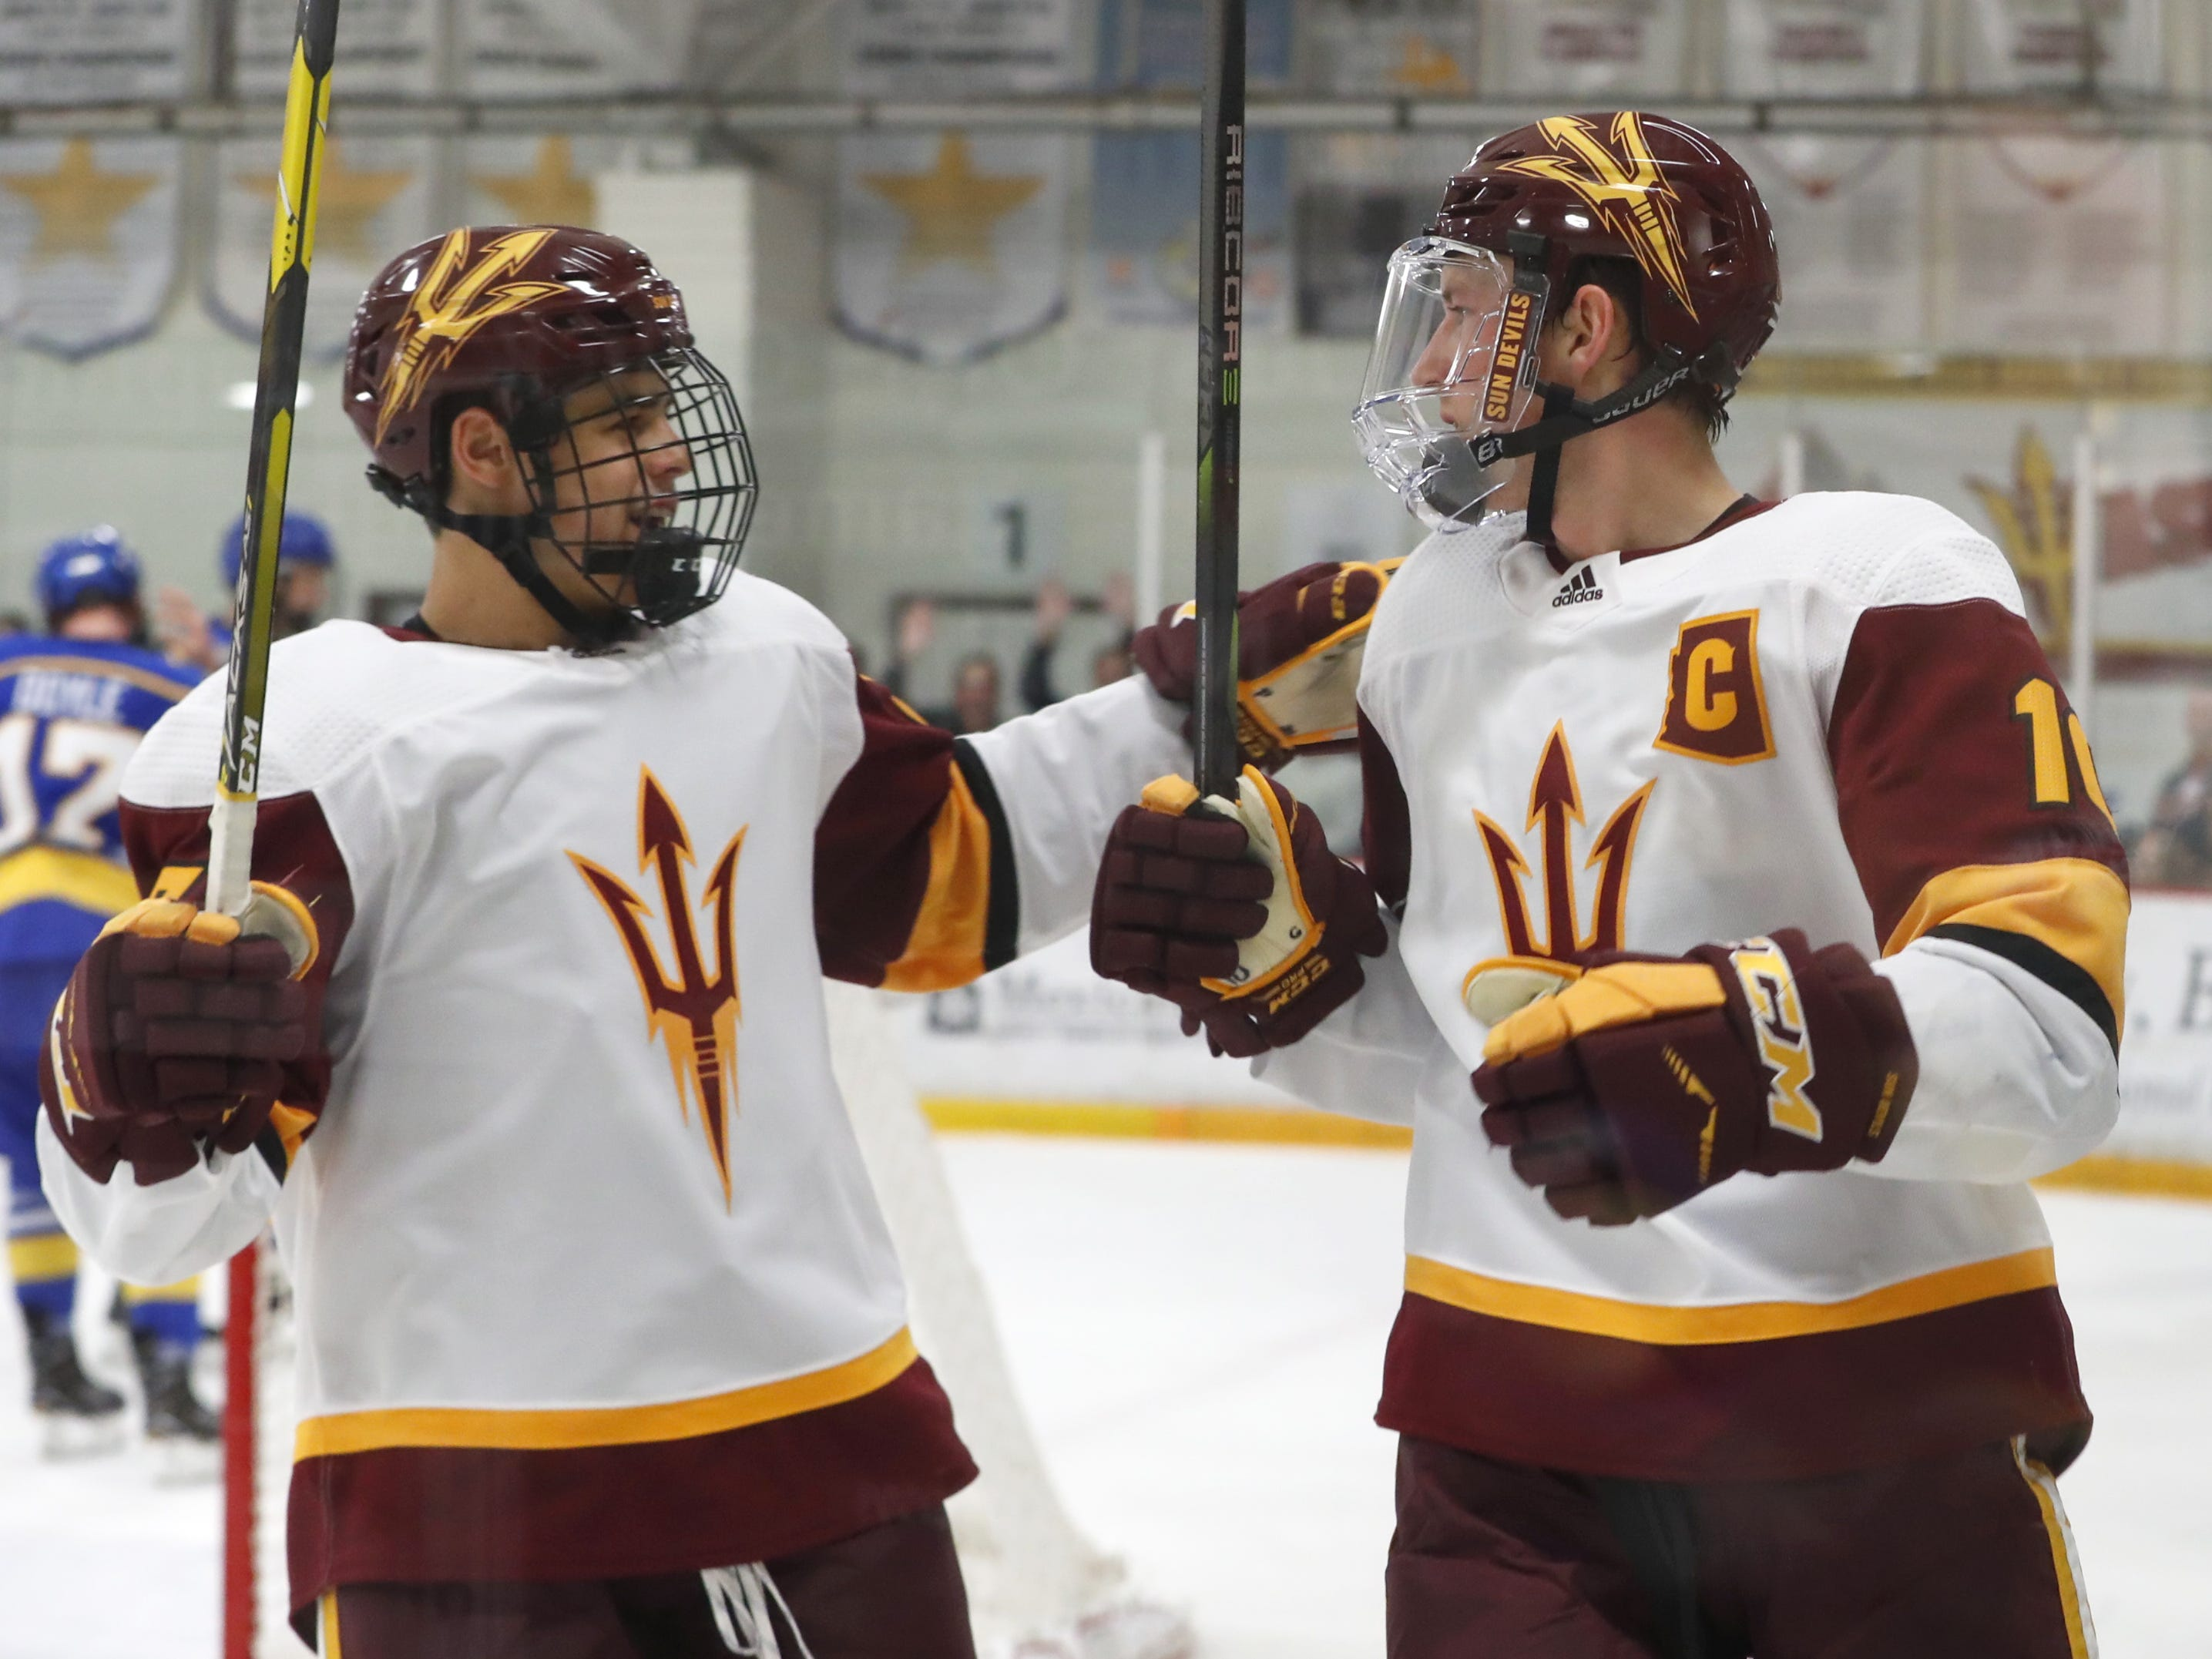 Alaska's Demetrios Koumontzis (23) celebrates with teammate Tyler Busch (10) after Busch scored against Alaska at Oceanside Ice Arena in Tempe, Ariz. on October 7, 2018.